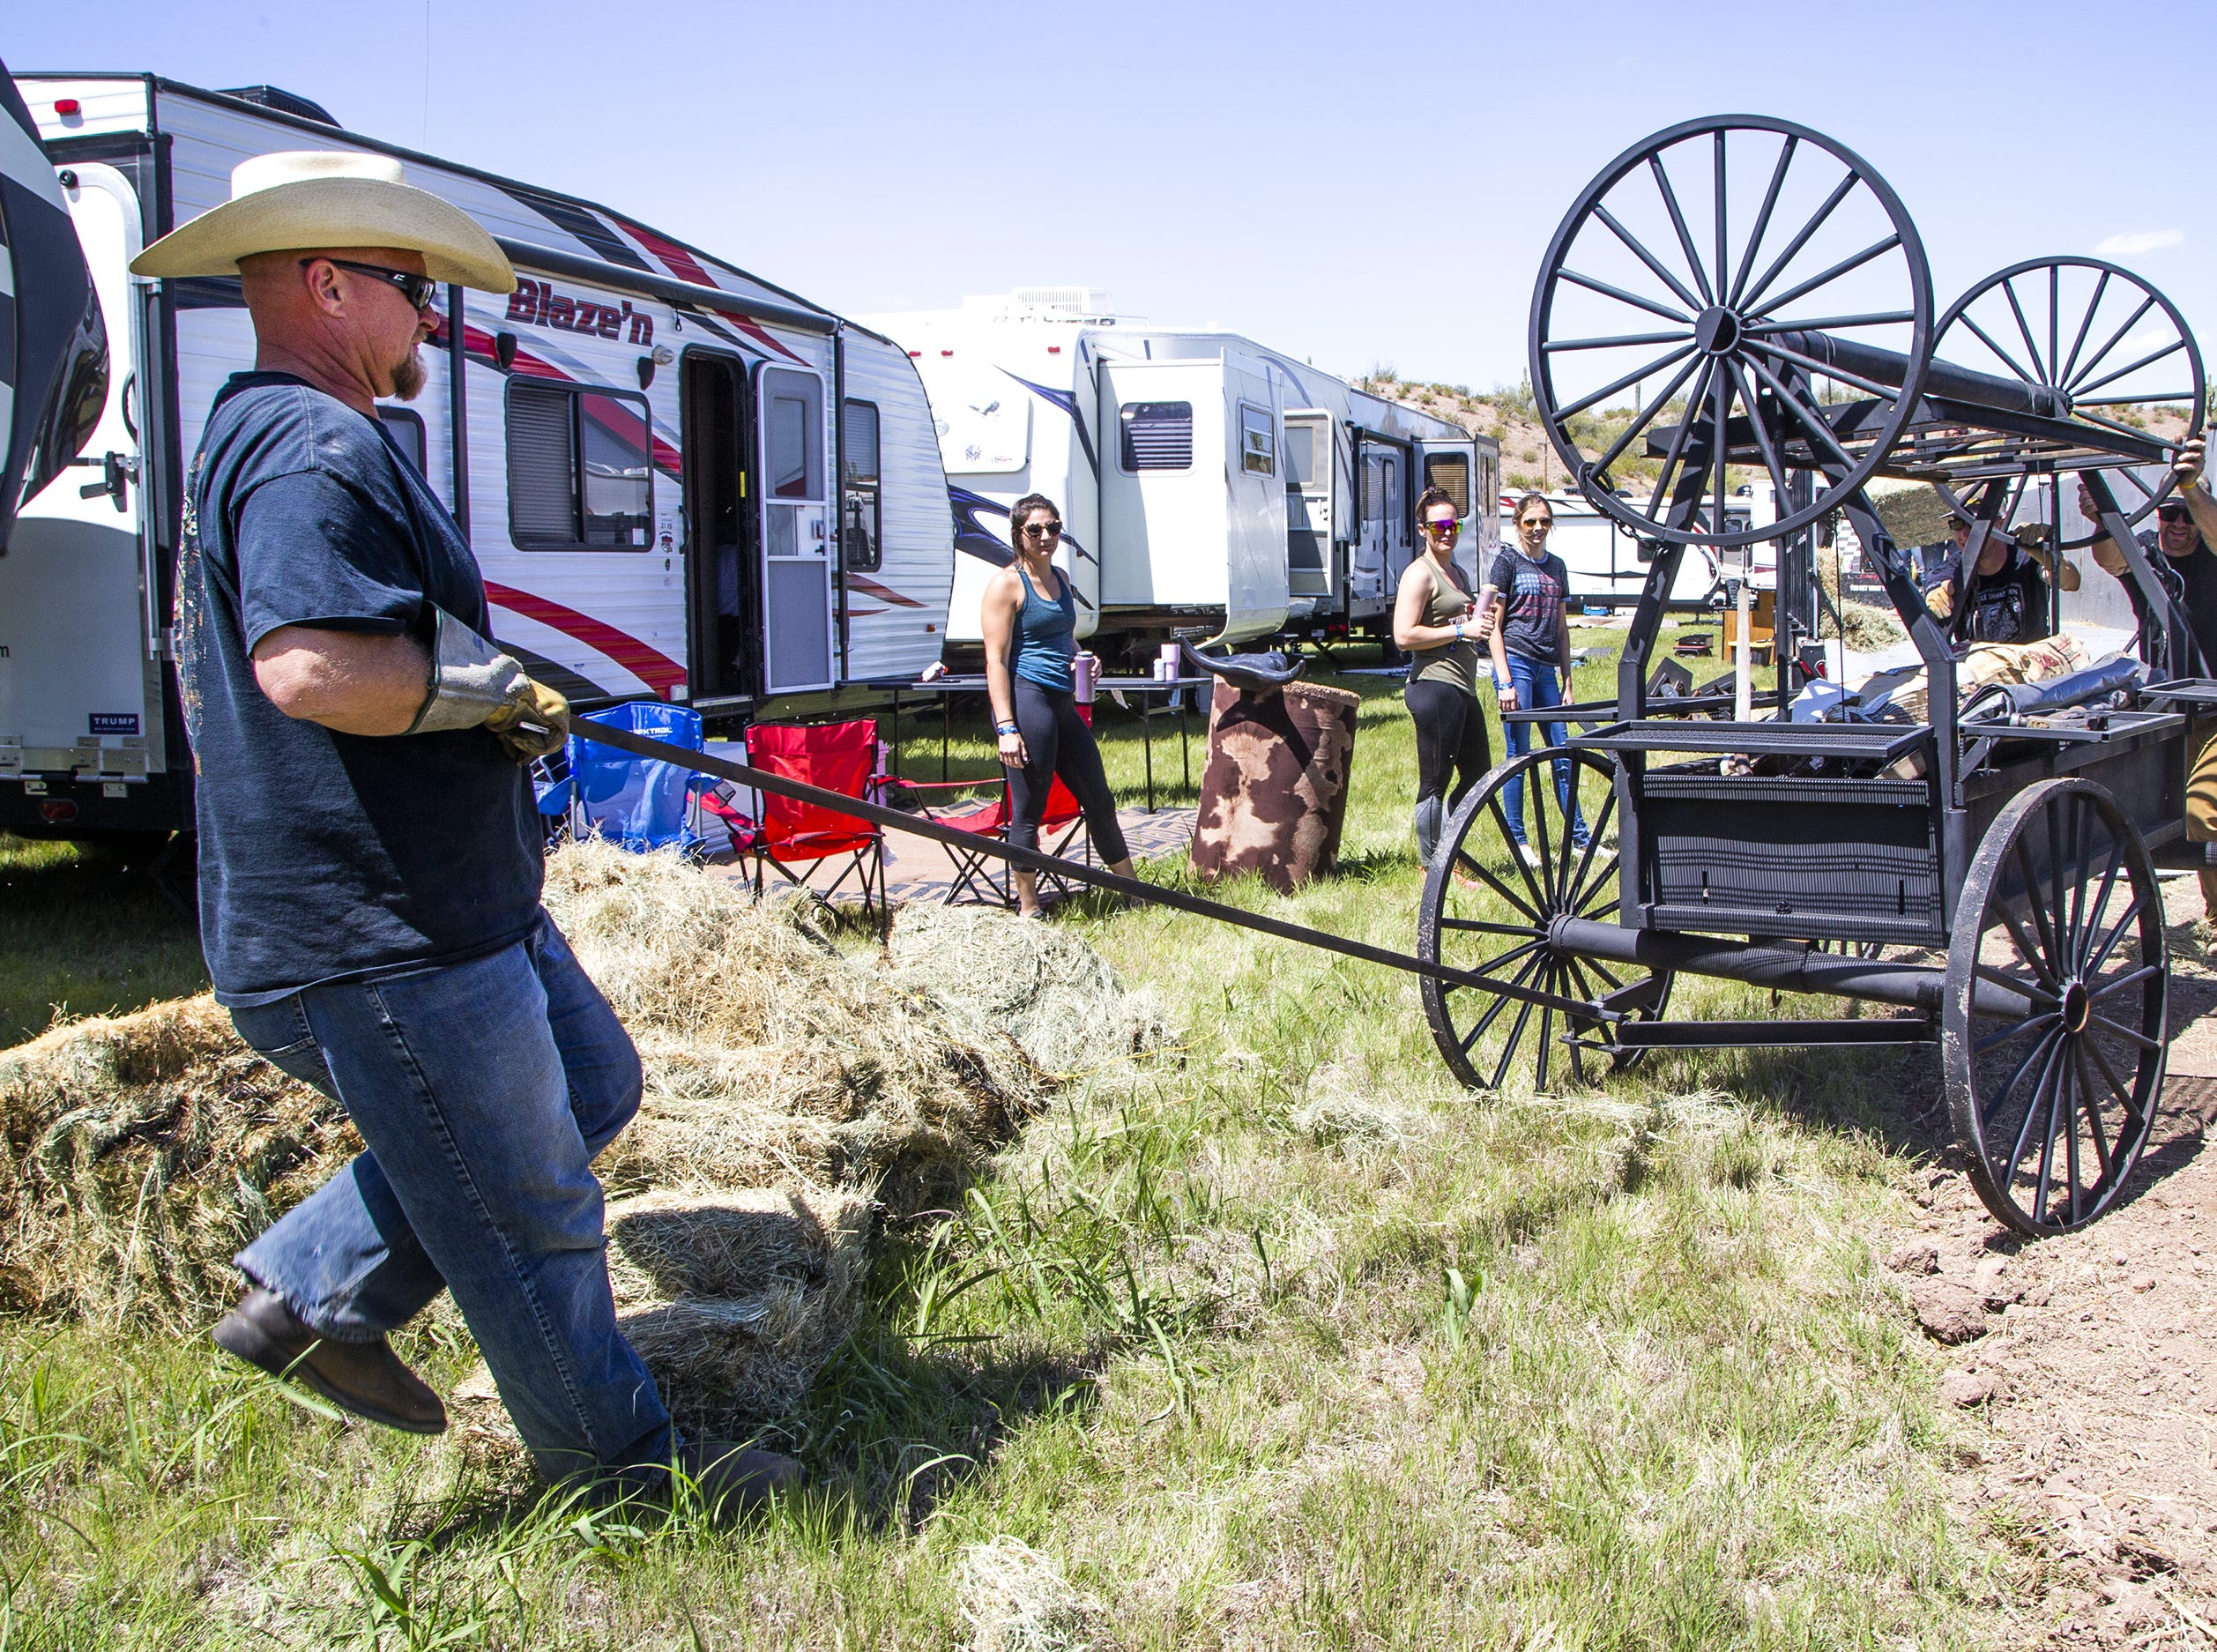 Chris Buhr, left, of Maricopa, pulls his rolling barbecue off a trailer into a campsite at the Country Thunder Arizona 2019 music festival outside Florence, April 10, 2019.